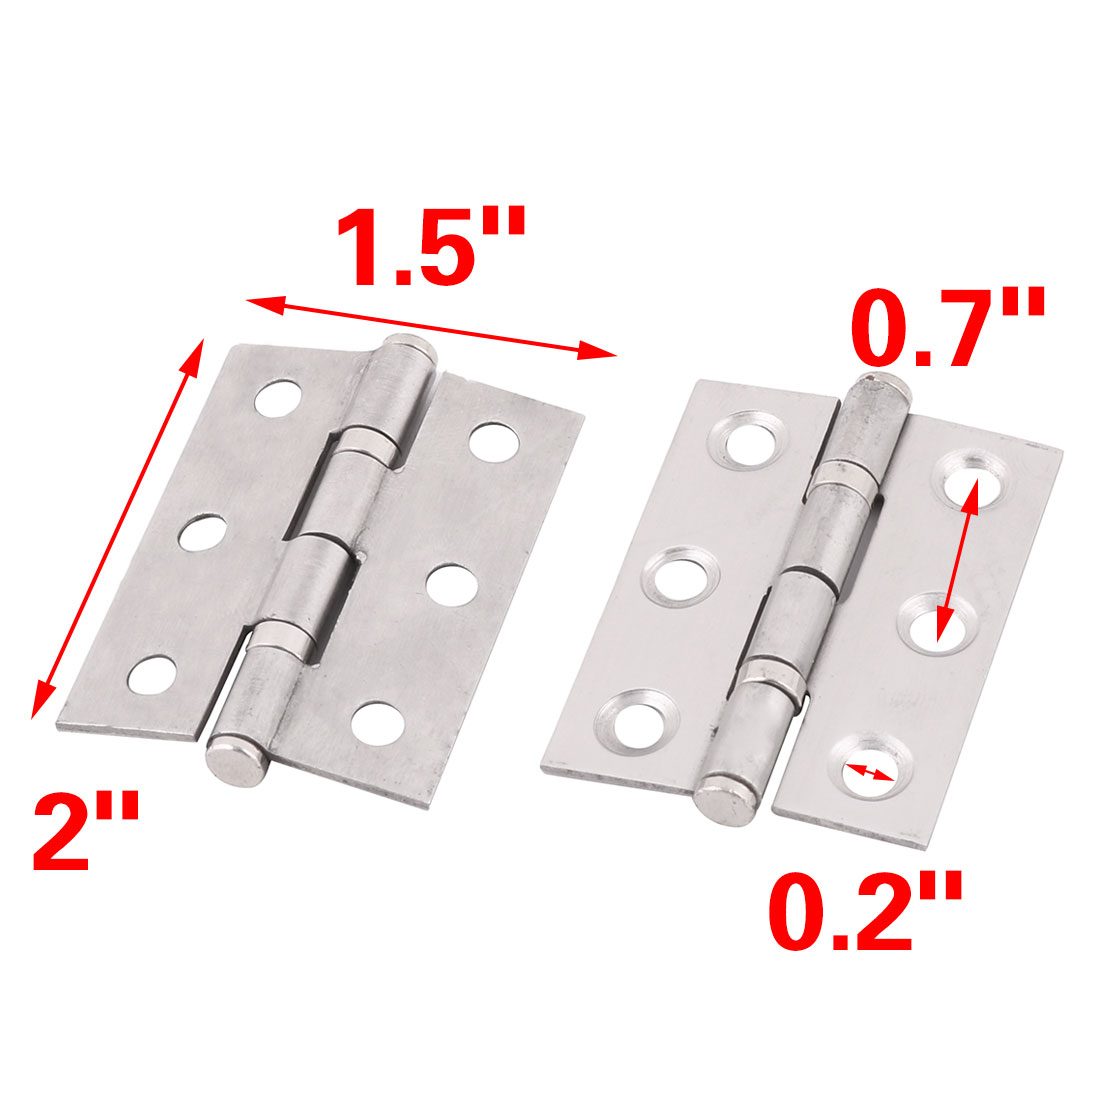 "2"" Length Home School Stainless Steel Cupboard Cabinet Gate Door Hinges 2pcs - image 2 de 4"